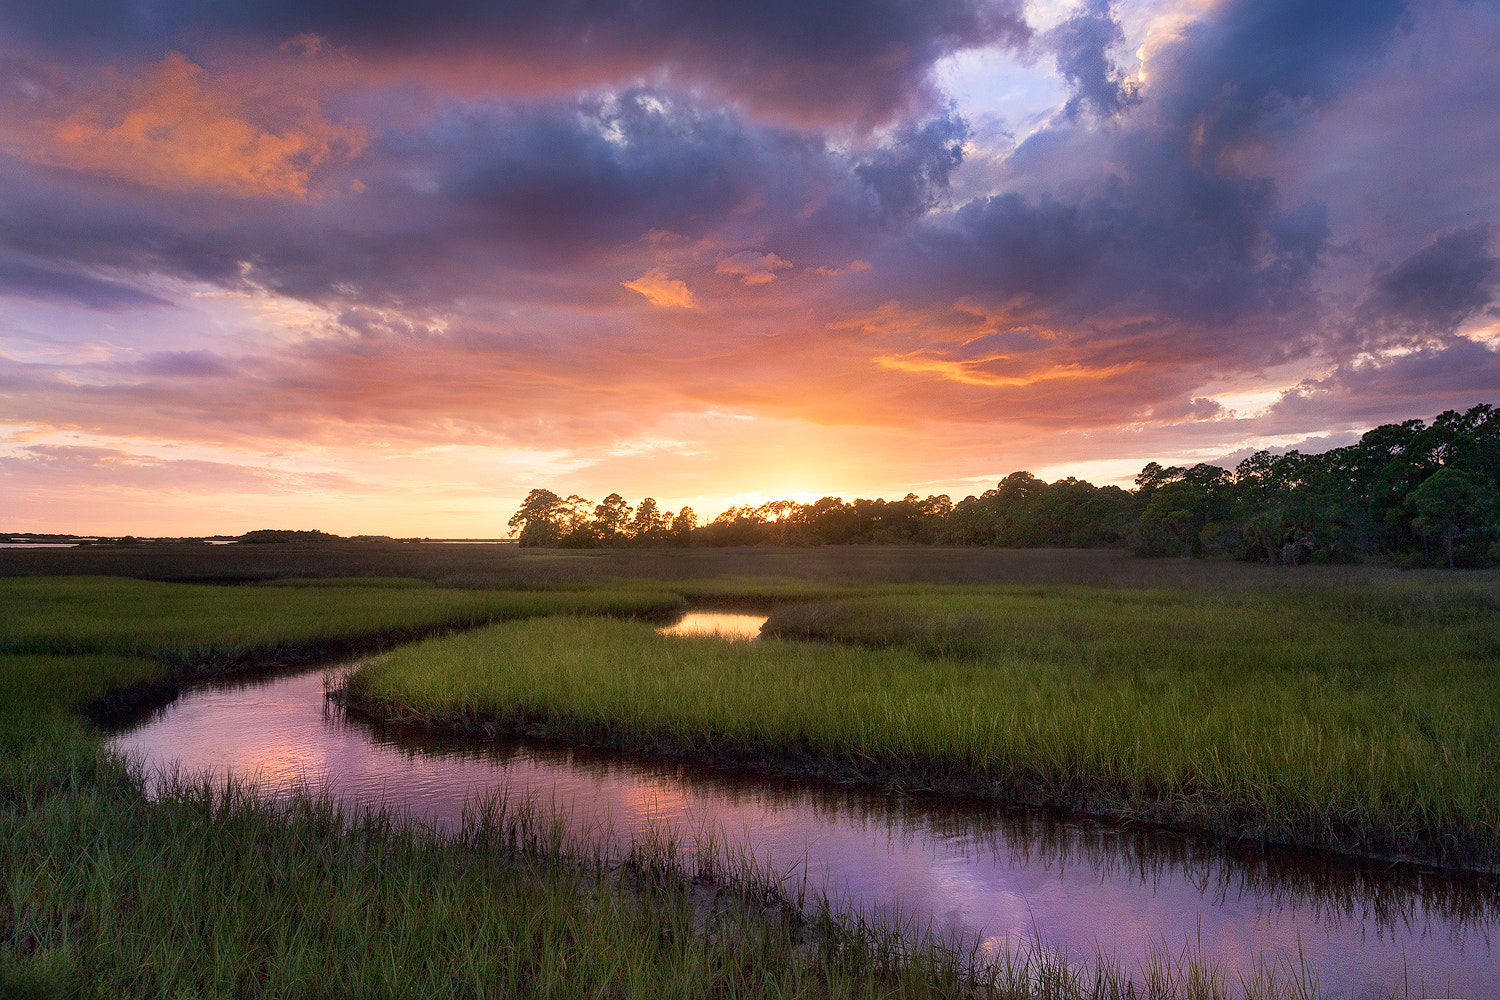 Photograph Florida Sunset by Jesse Summers on 500px